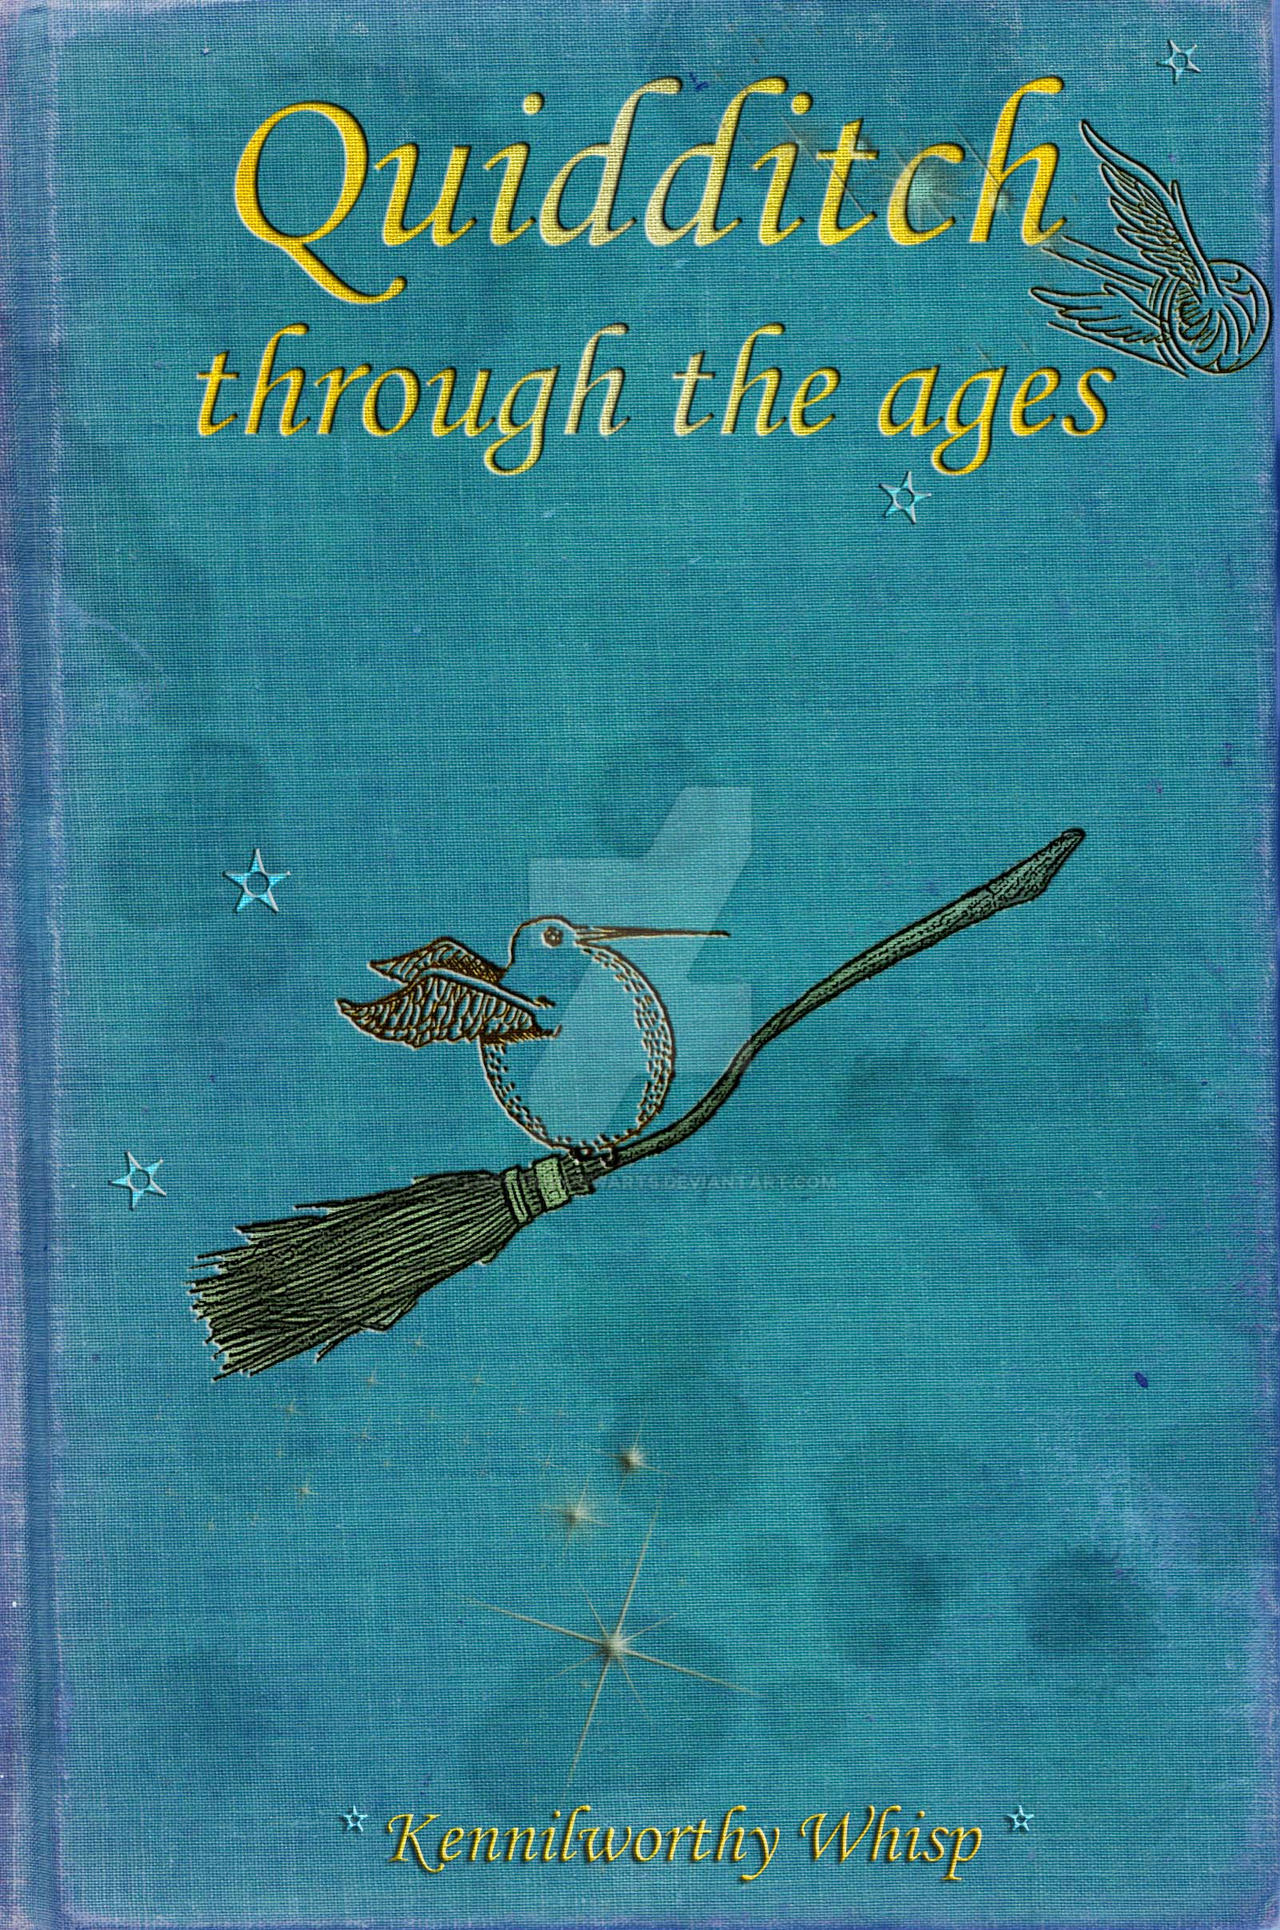 Book Cover Printable Questions : Quidditch through the ages by lost in hogwarts on deviantart